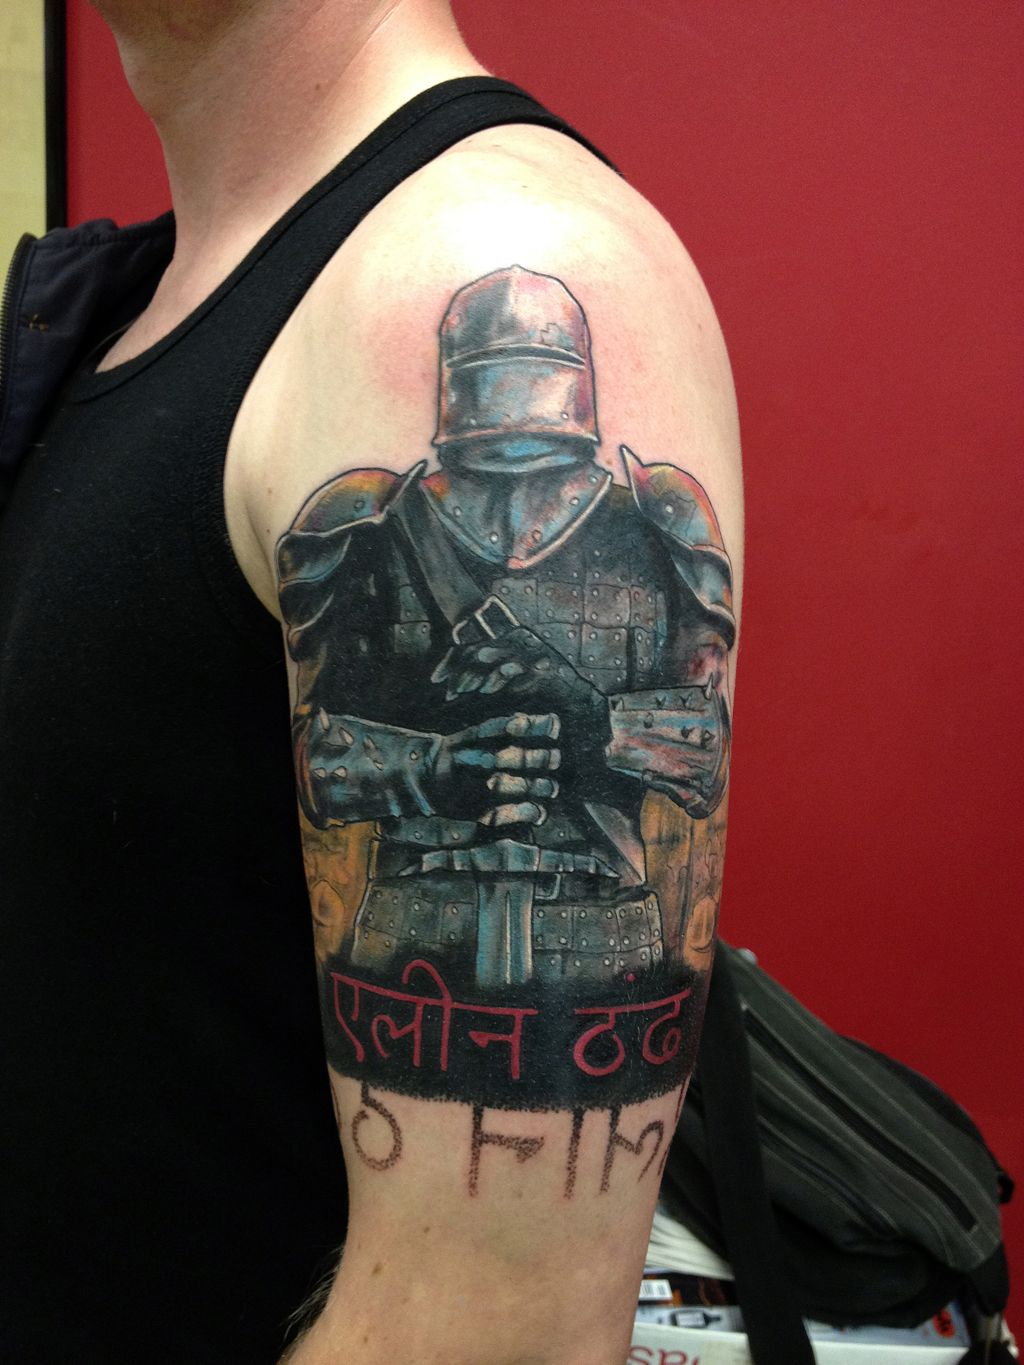 Crusader Warrior Korsridder Tattoo | Robert | Pinterest ...